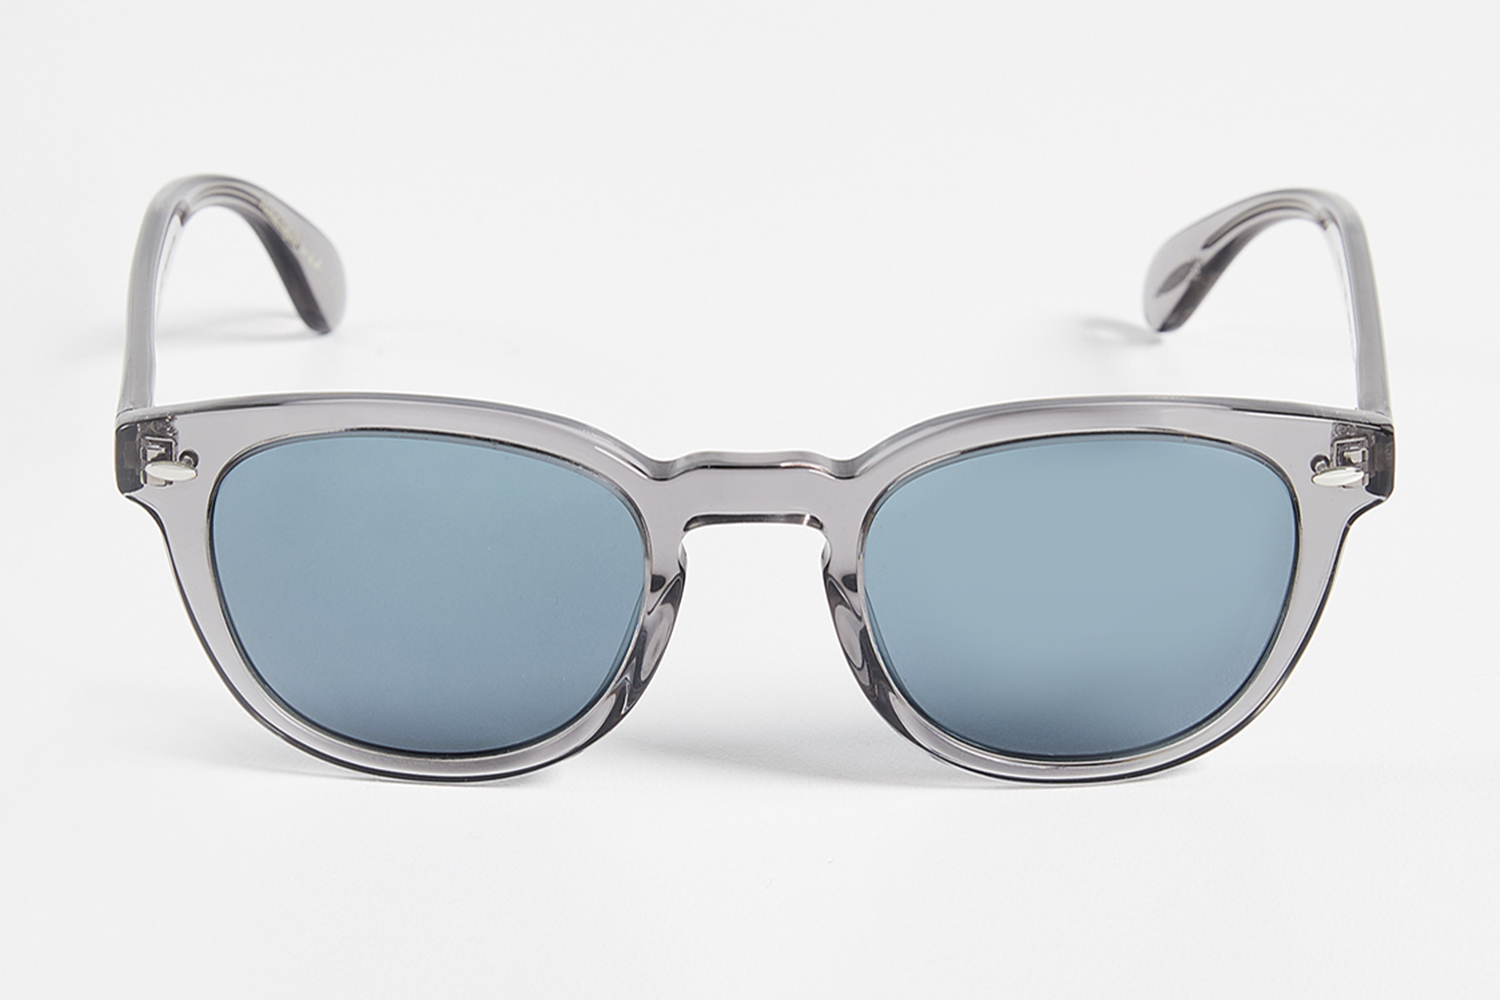 Oliver Peoples Sunglasses Sale East Dane